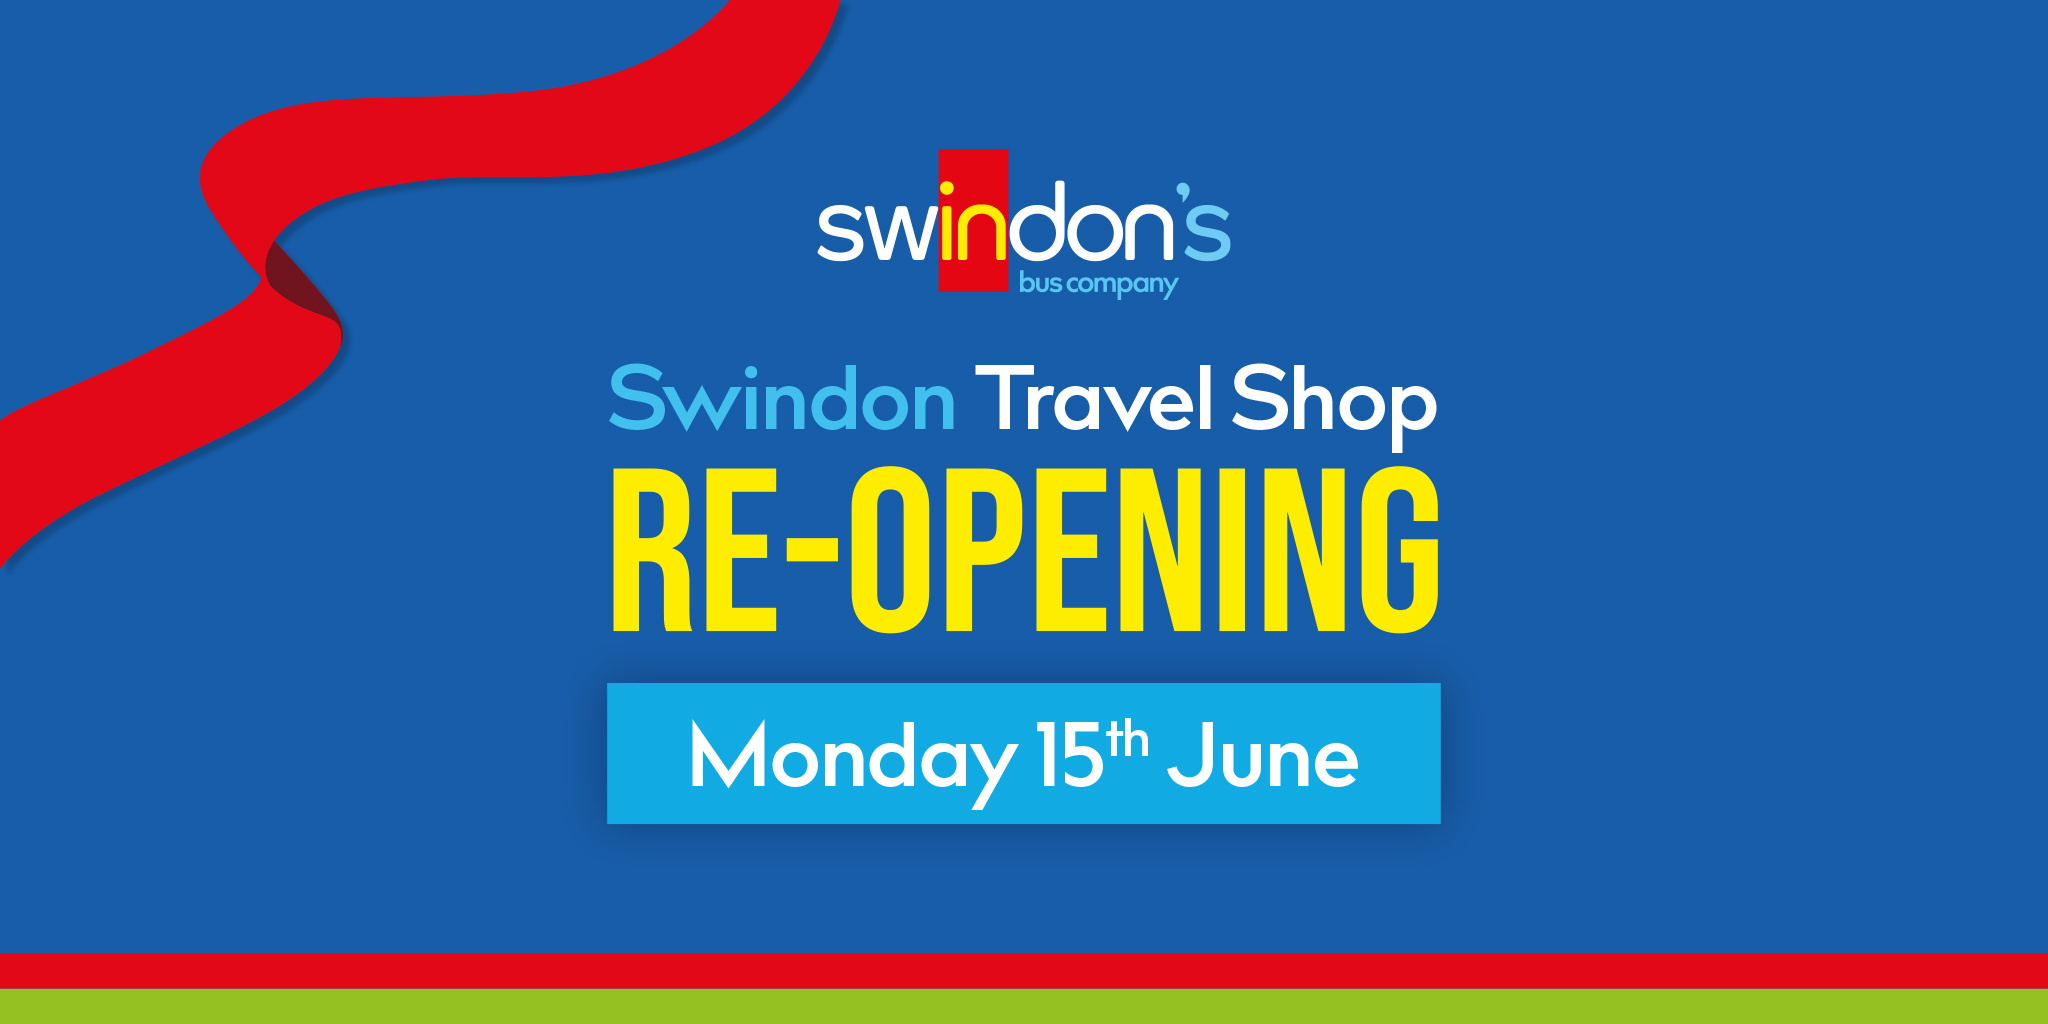 Image reading 'Swindon's Bus Company Travel Shop Re-opening Monday 15th June'